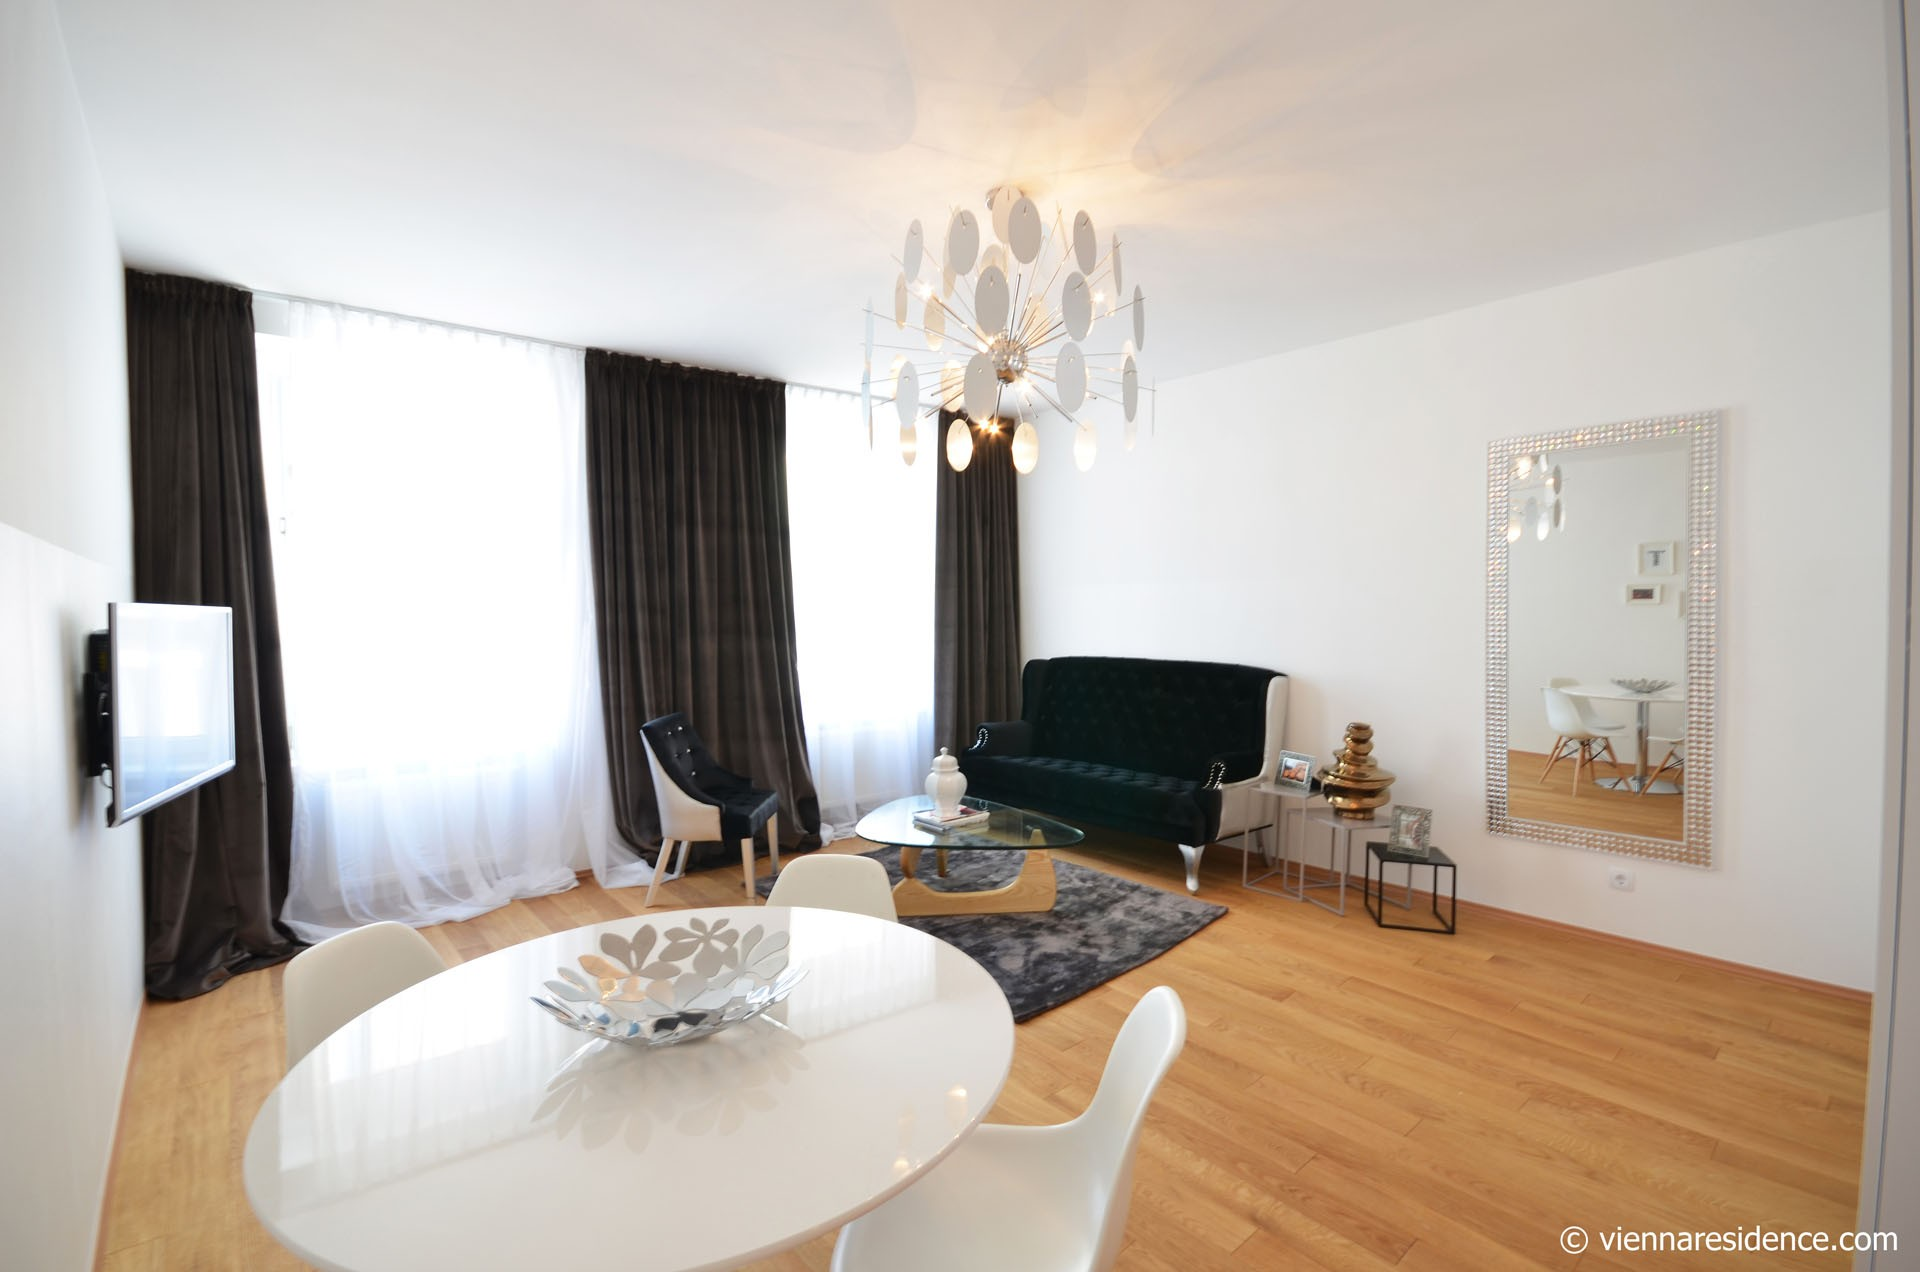 Elegantly furnished Apartment in Vienna Alsergrund Equipment: electric stove, oven, refrigerator, freezer, coffee machine, Kitchenware, TV, double bed, washing machine, vacuum cleaner, Internet, Digital Cable TV, Fully equipped kitchen, Fully furnished interior, Non smoking, Cleaning utensils supplied adequately